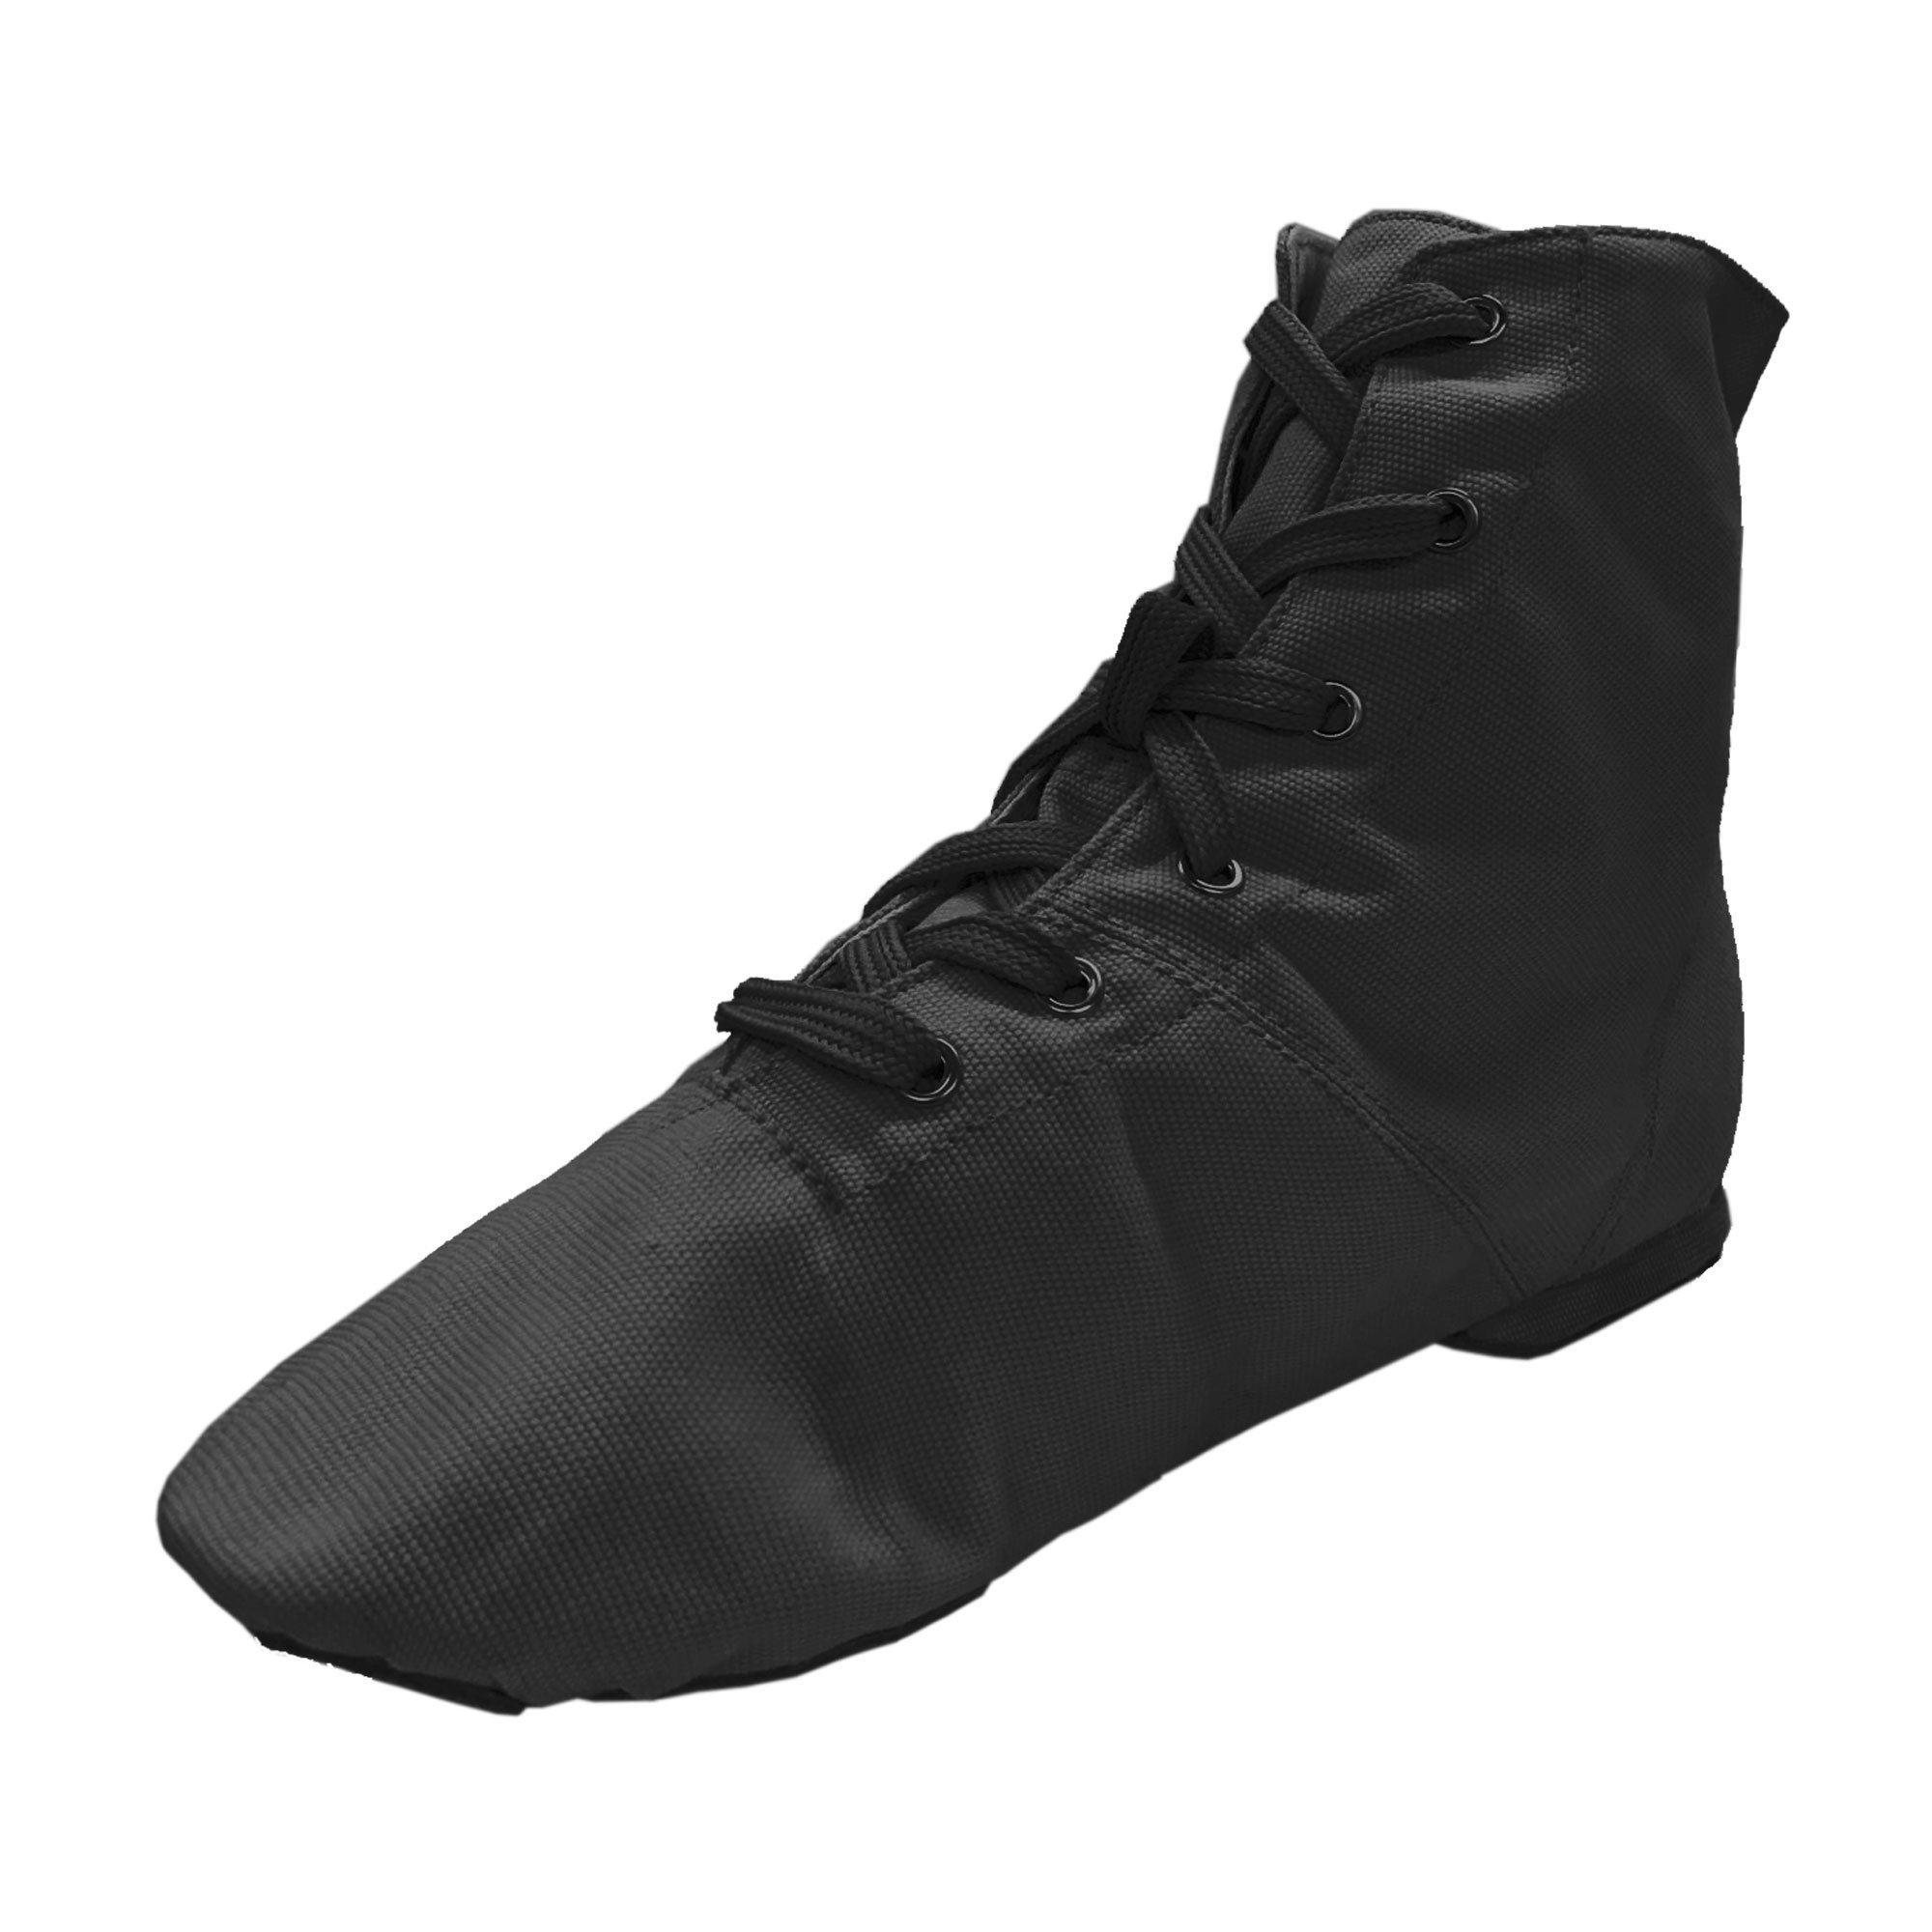 Danzcue Womens Black Canvas Lace up Jazz Boot Shoes, 9 M US